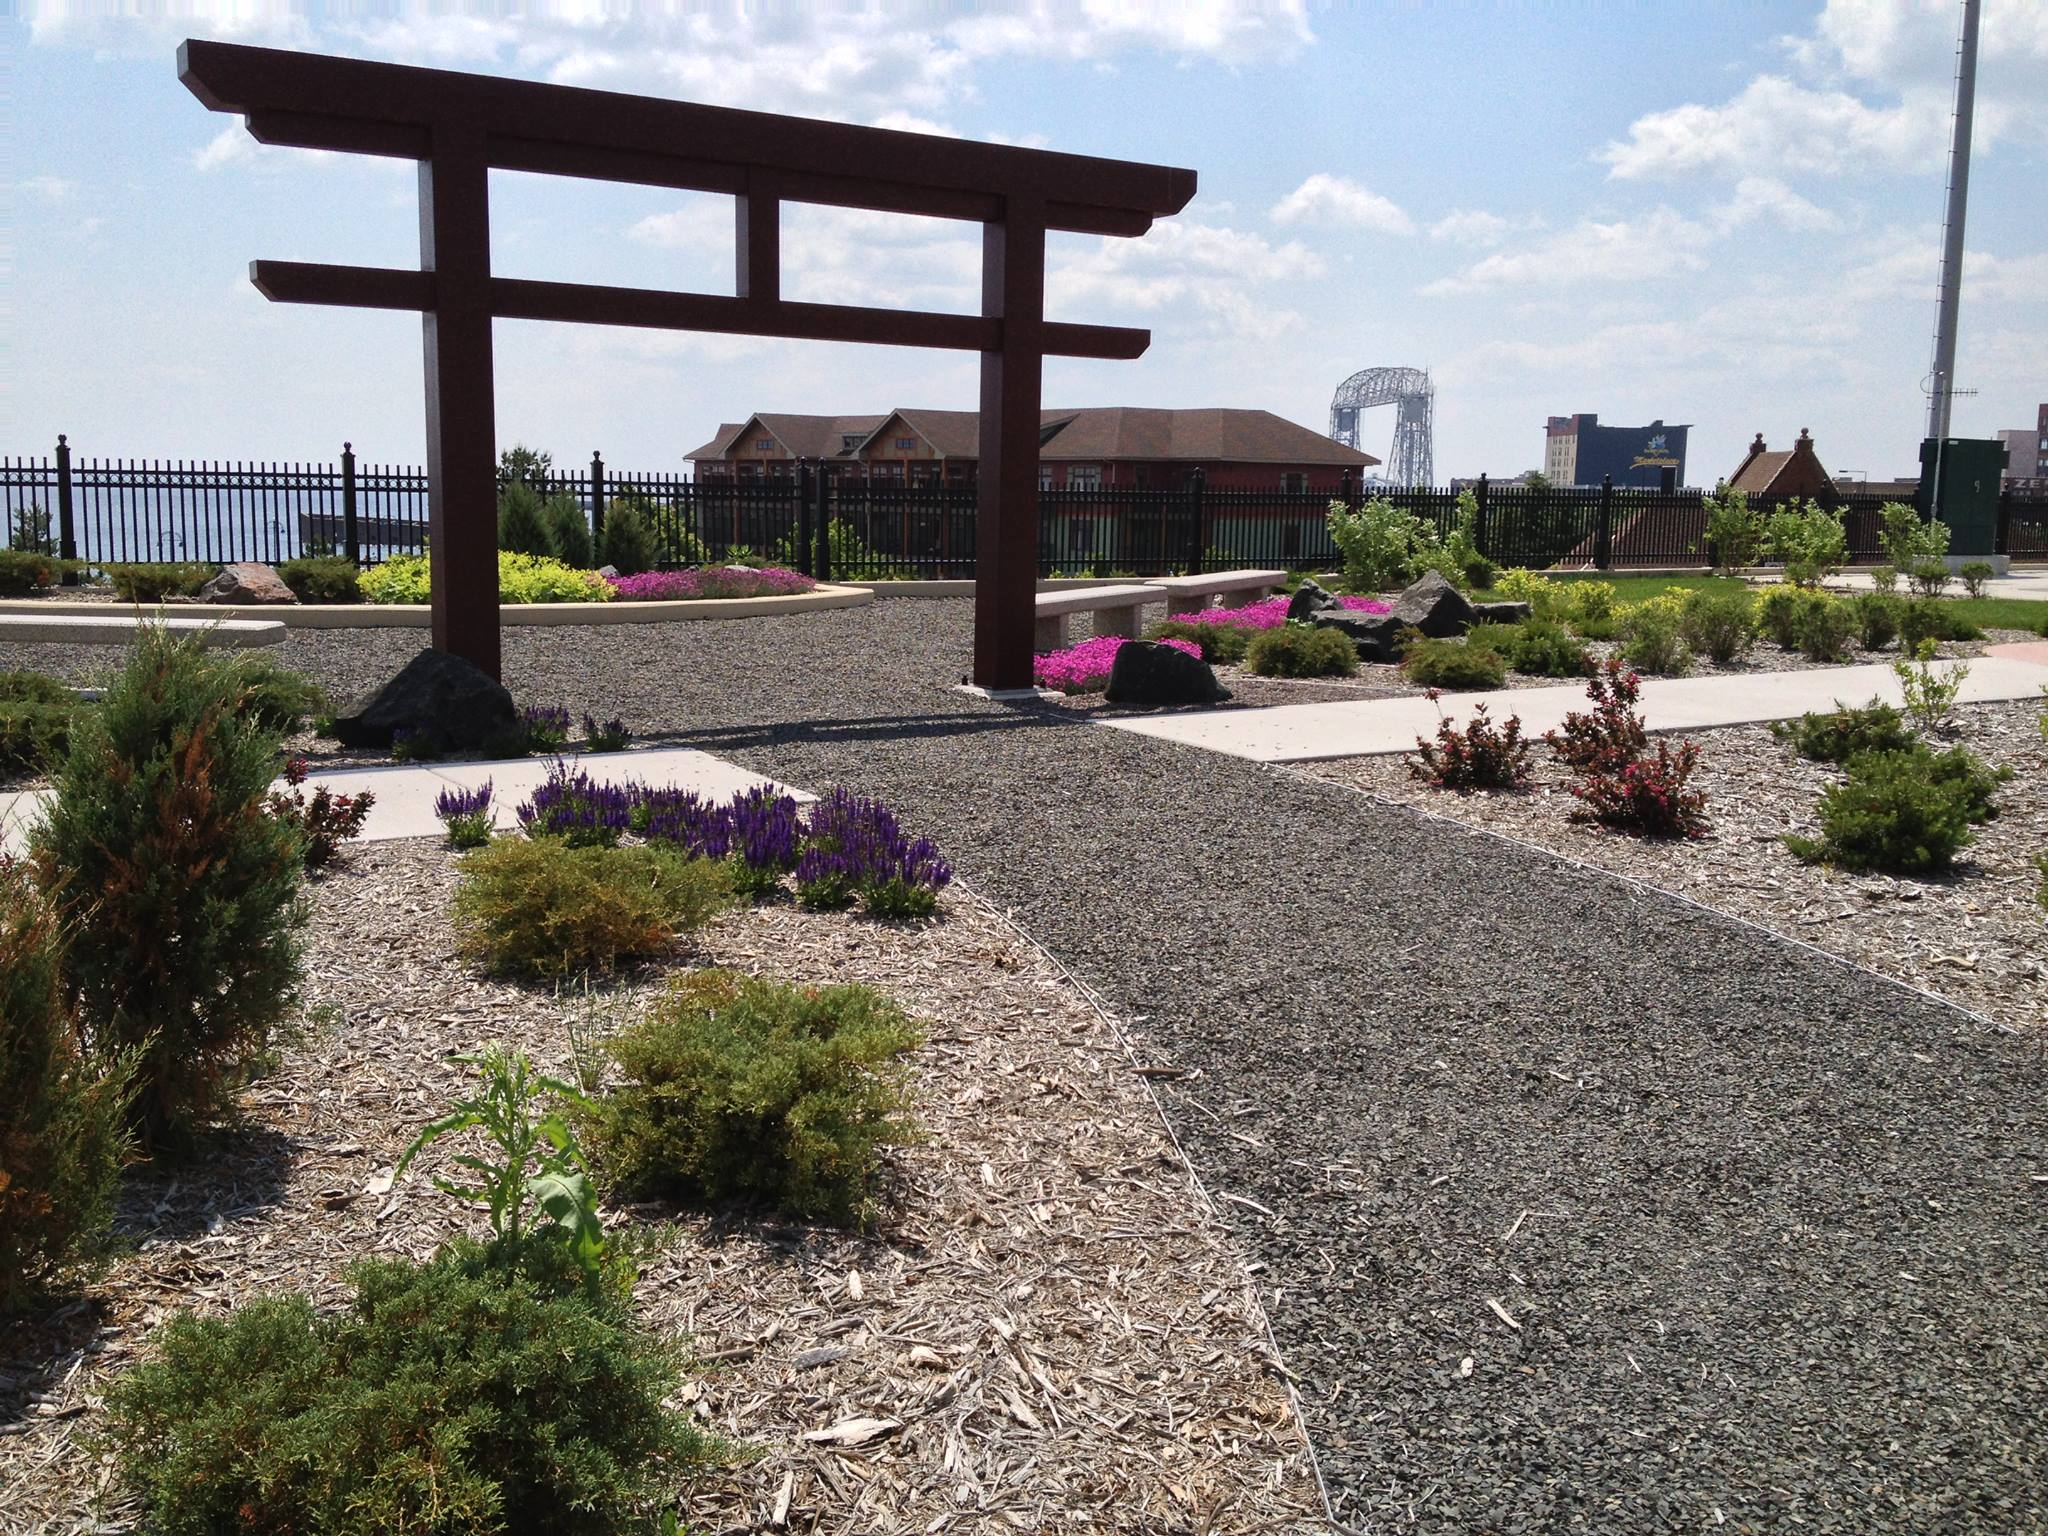 Duluth Sister Cities Park